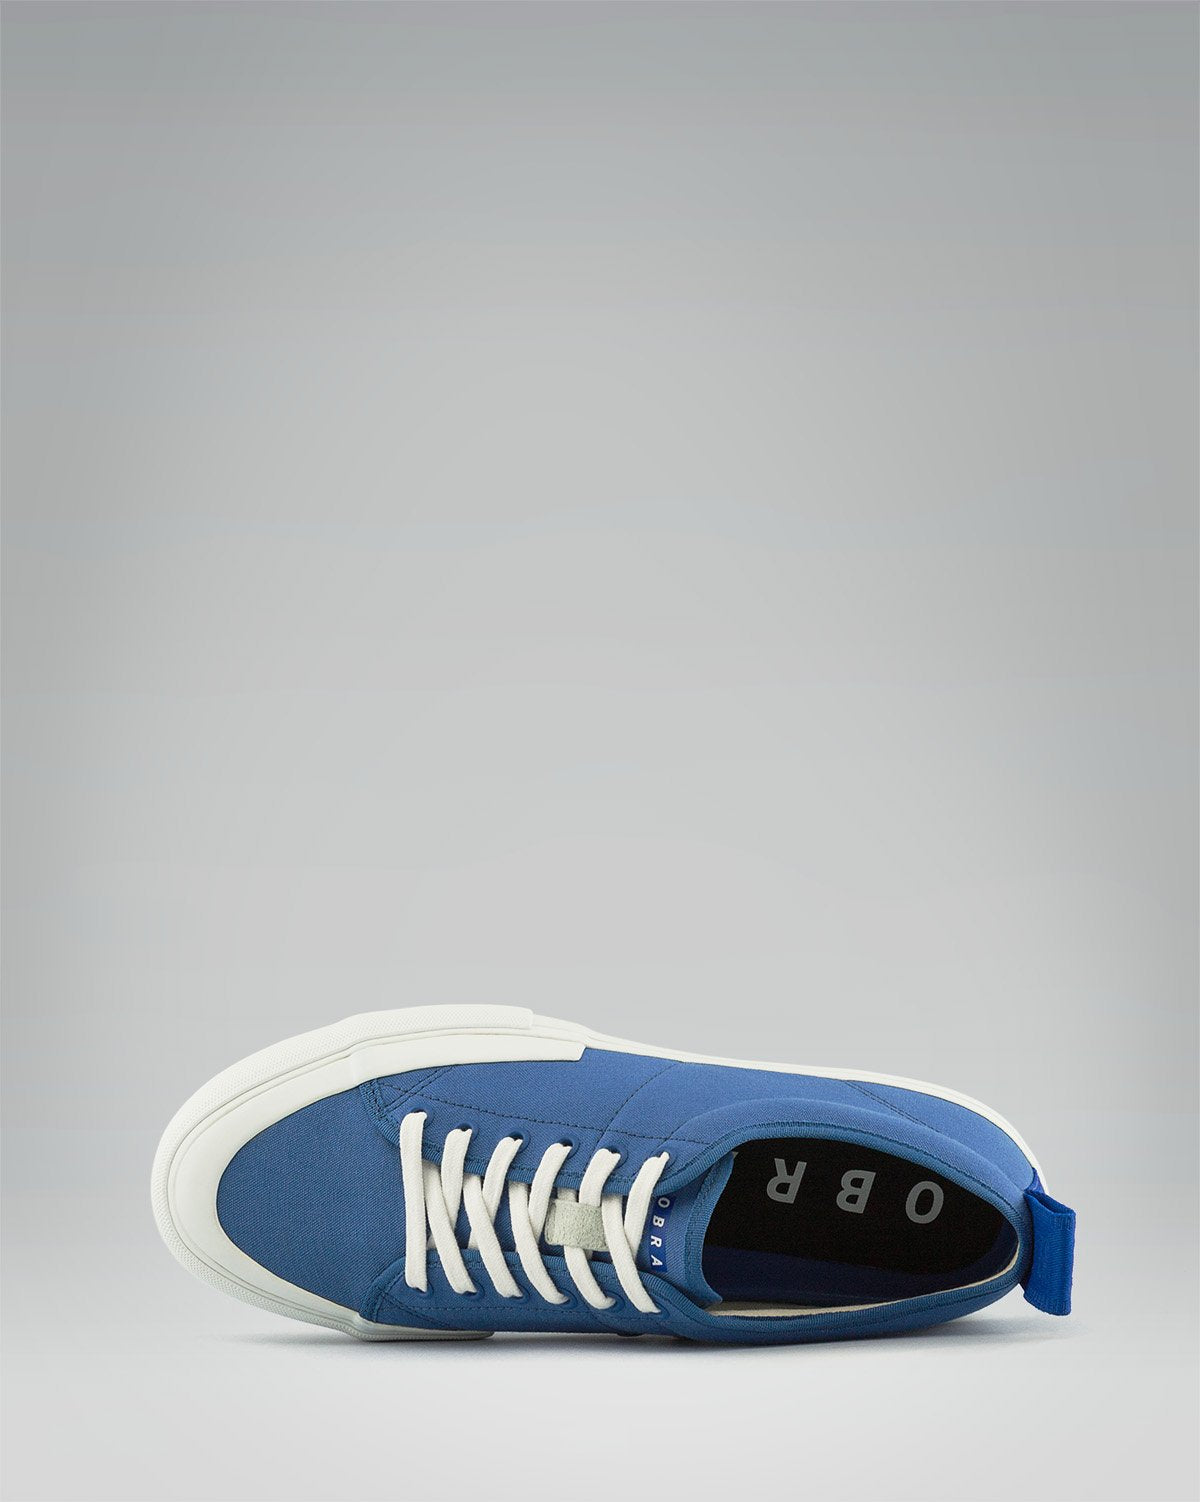 240 CANVAS LOW WRAP TOE - Torres Blue/White/OBRA Blue